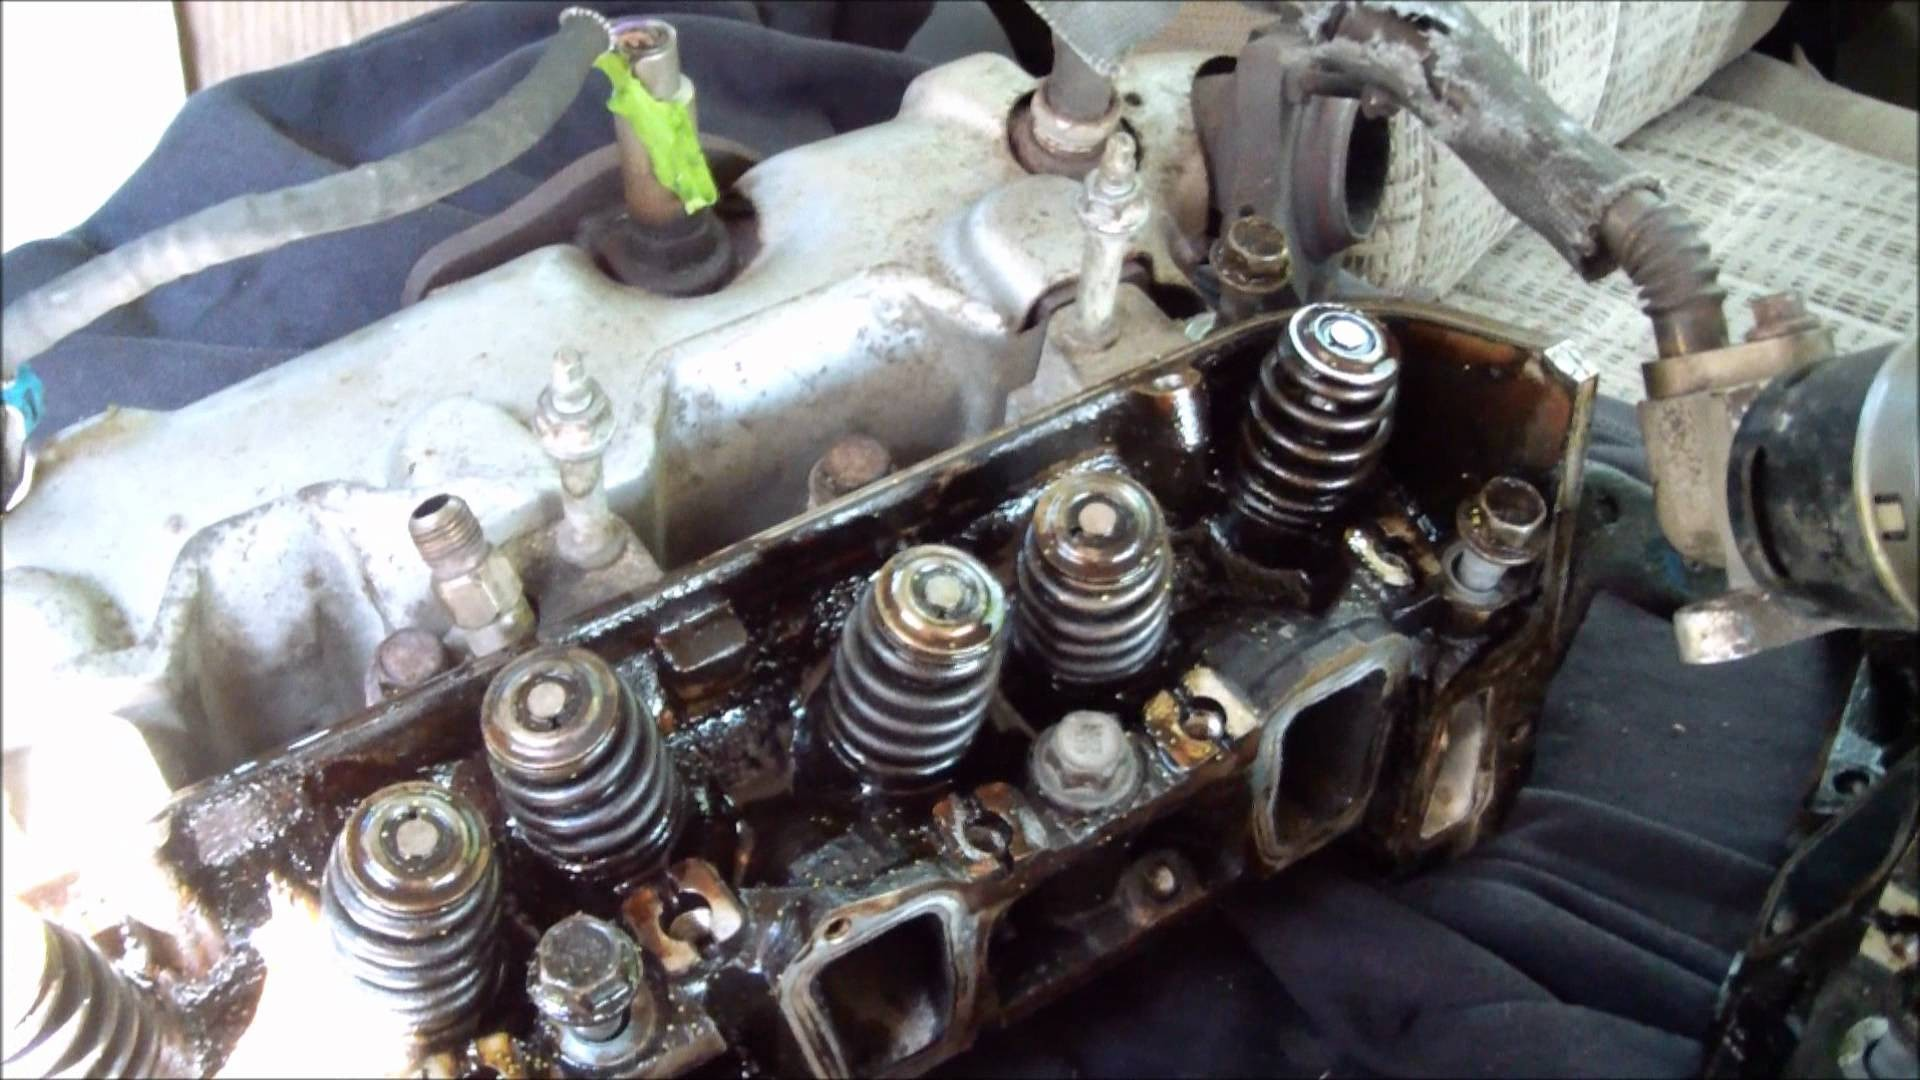 Chevy Venture Engine Diagram 2003 3400 Gmc Mikethereinholder With Blown Head Gaskets Video Of